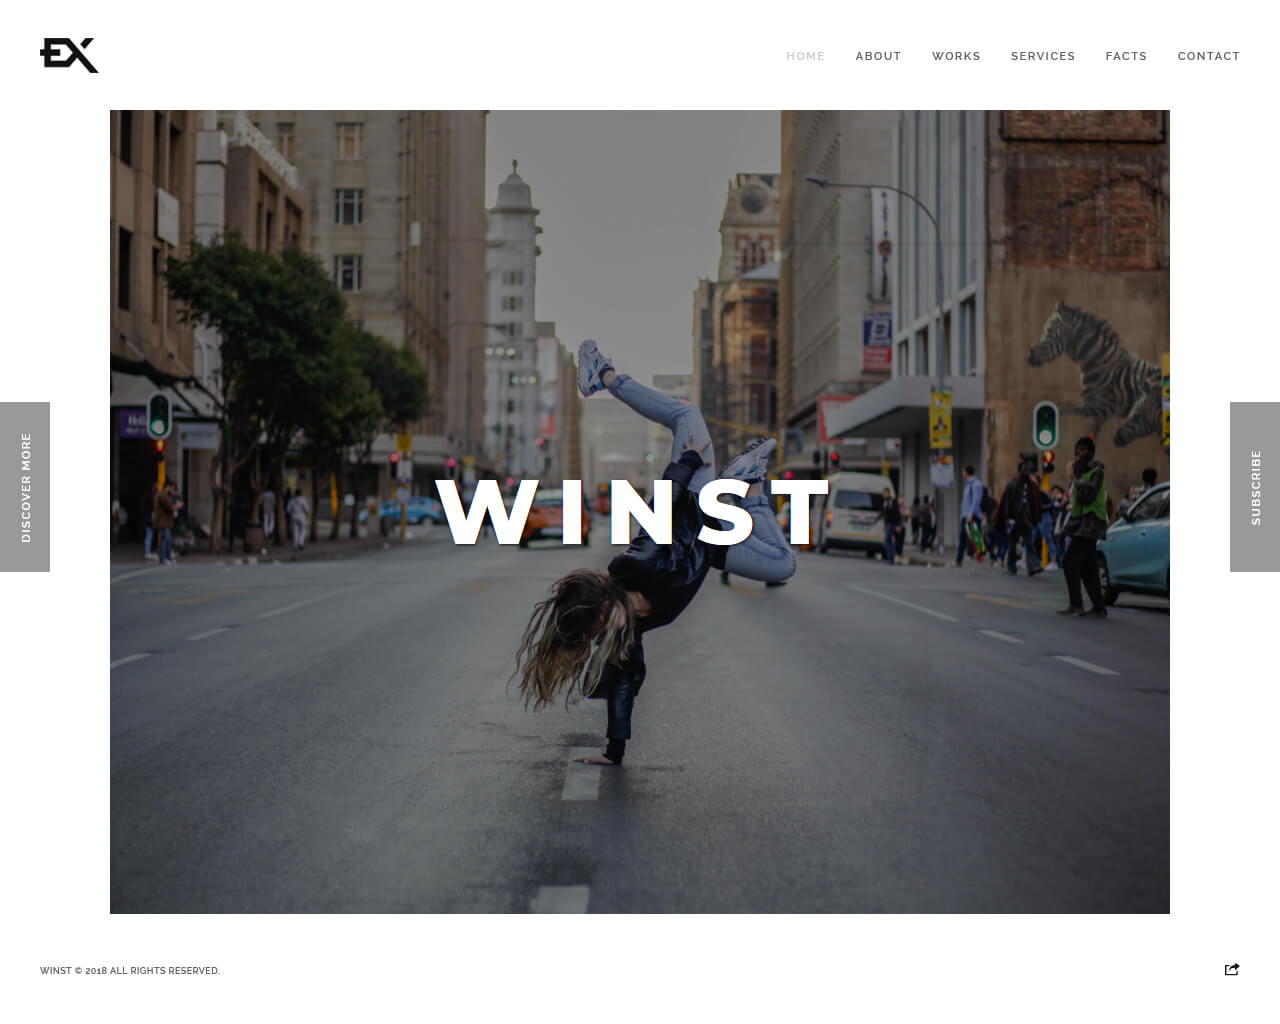 Winst Website Template